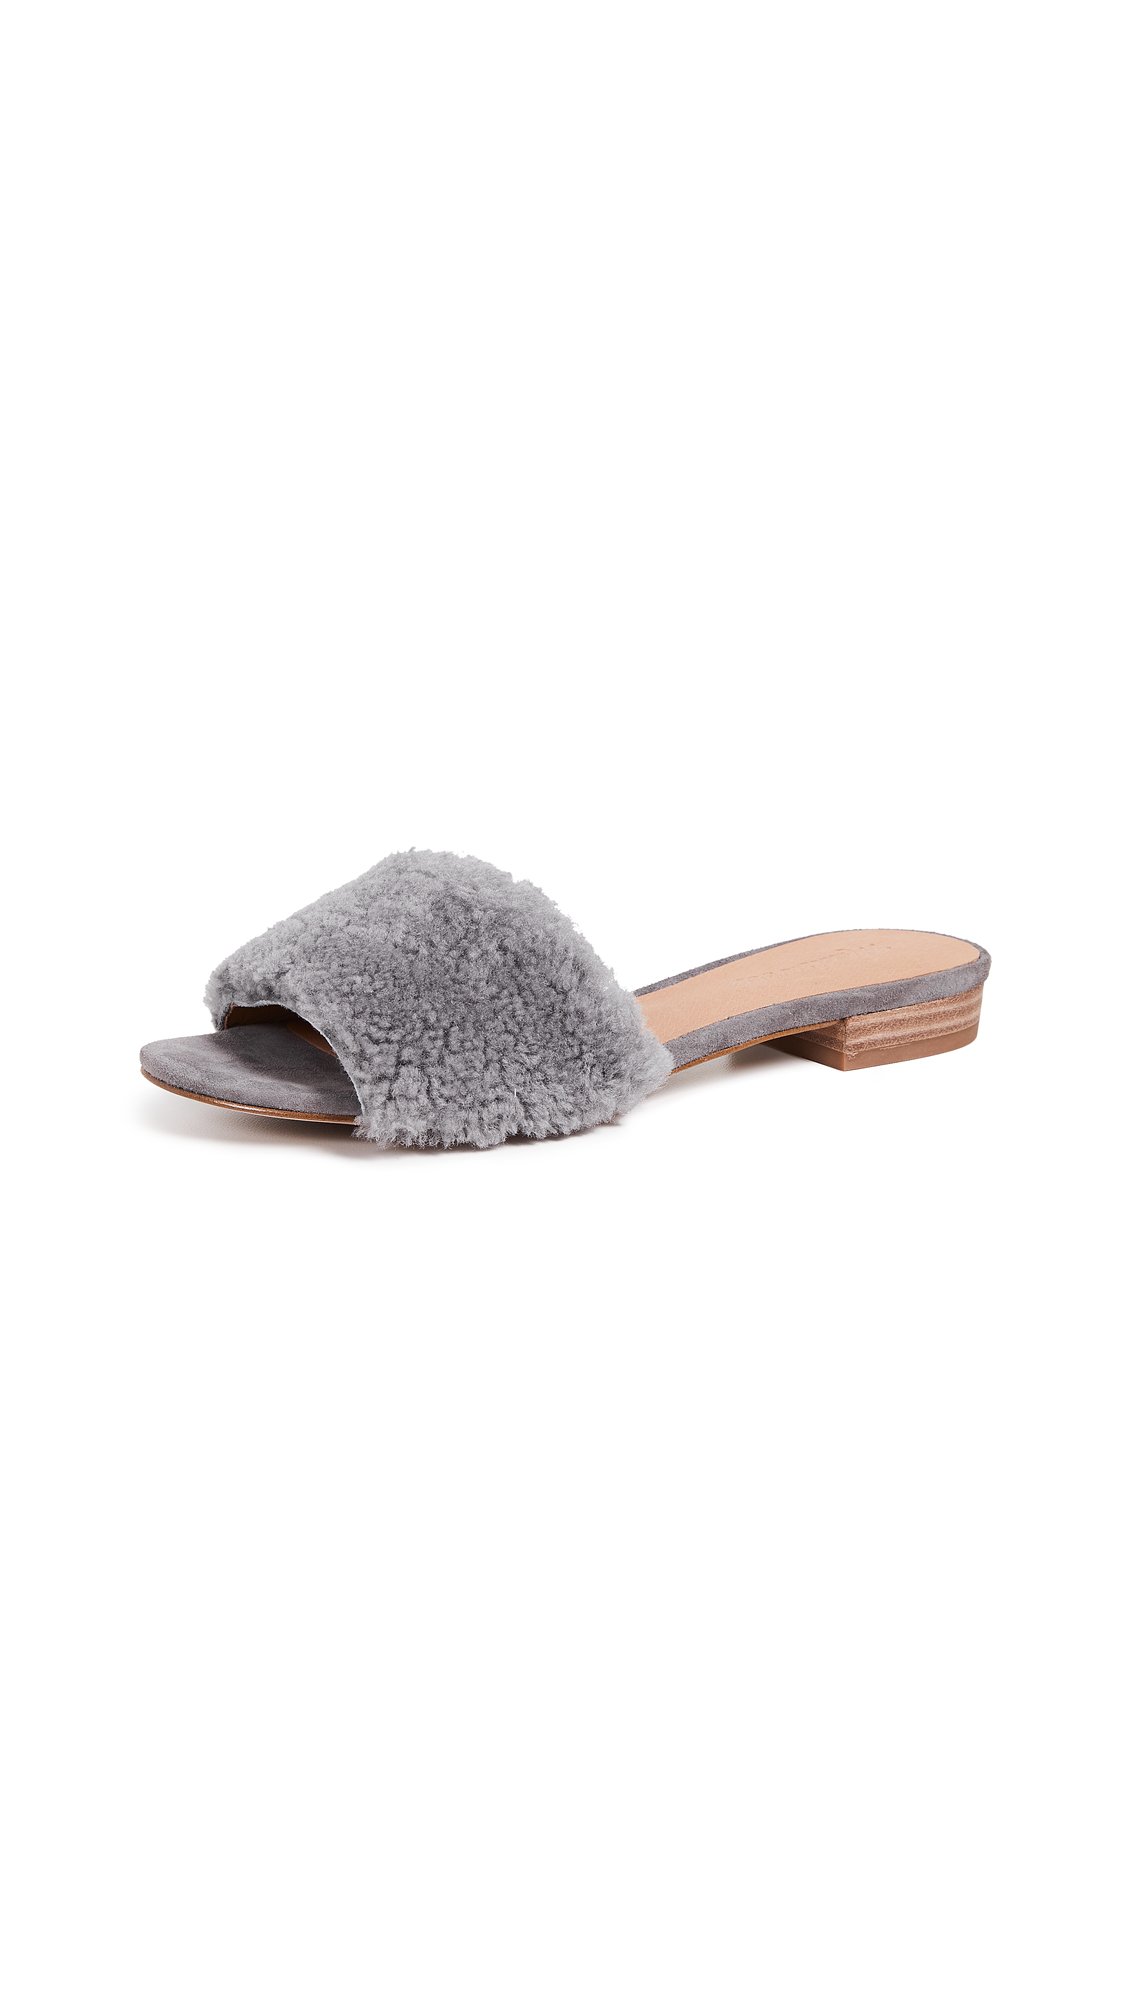 Madewell The Jackson Shearling Slide Sandals - Stonewall